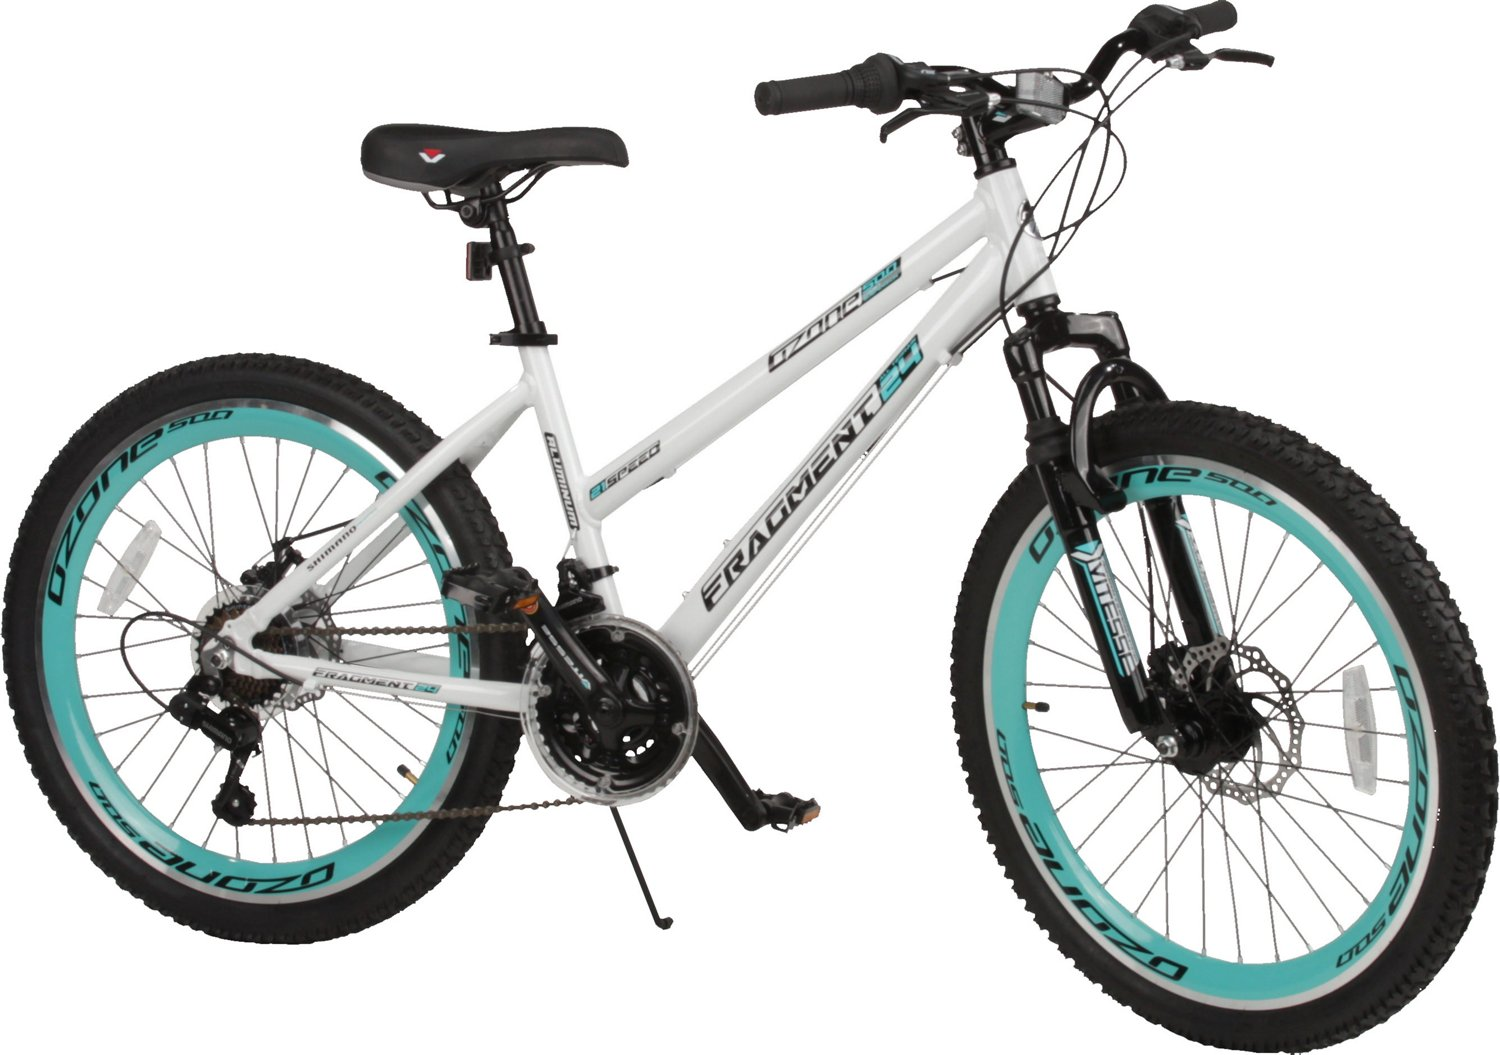 2837b571a9b Display product reviews for Ozone 500 Girls' Fragment 24 in 21-Speed  Mountain Bike